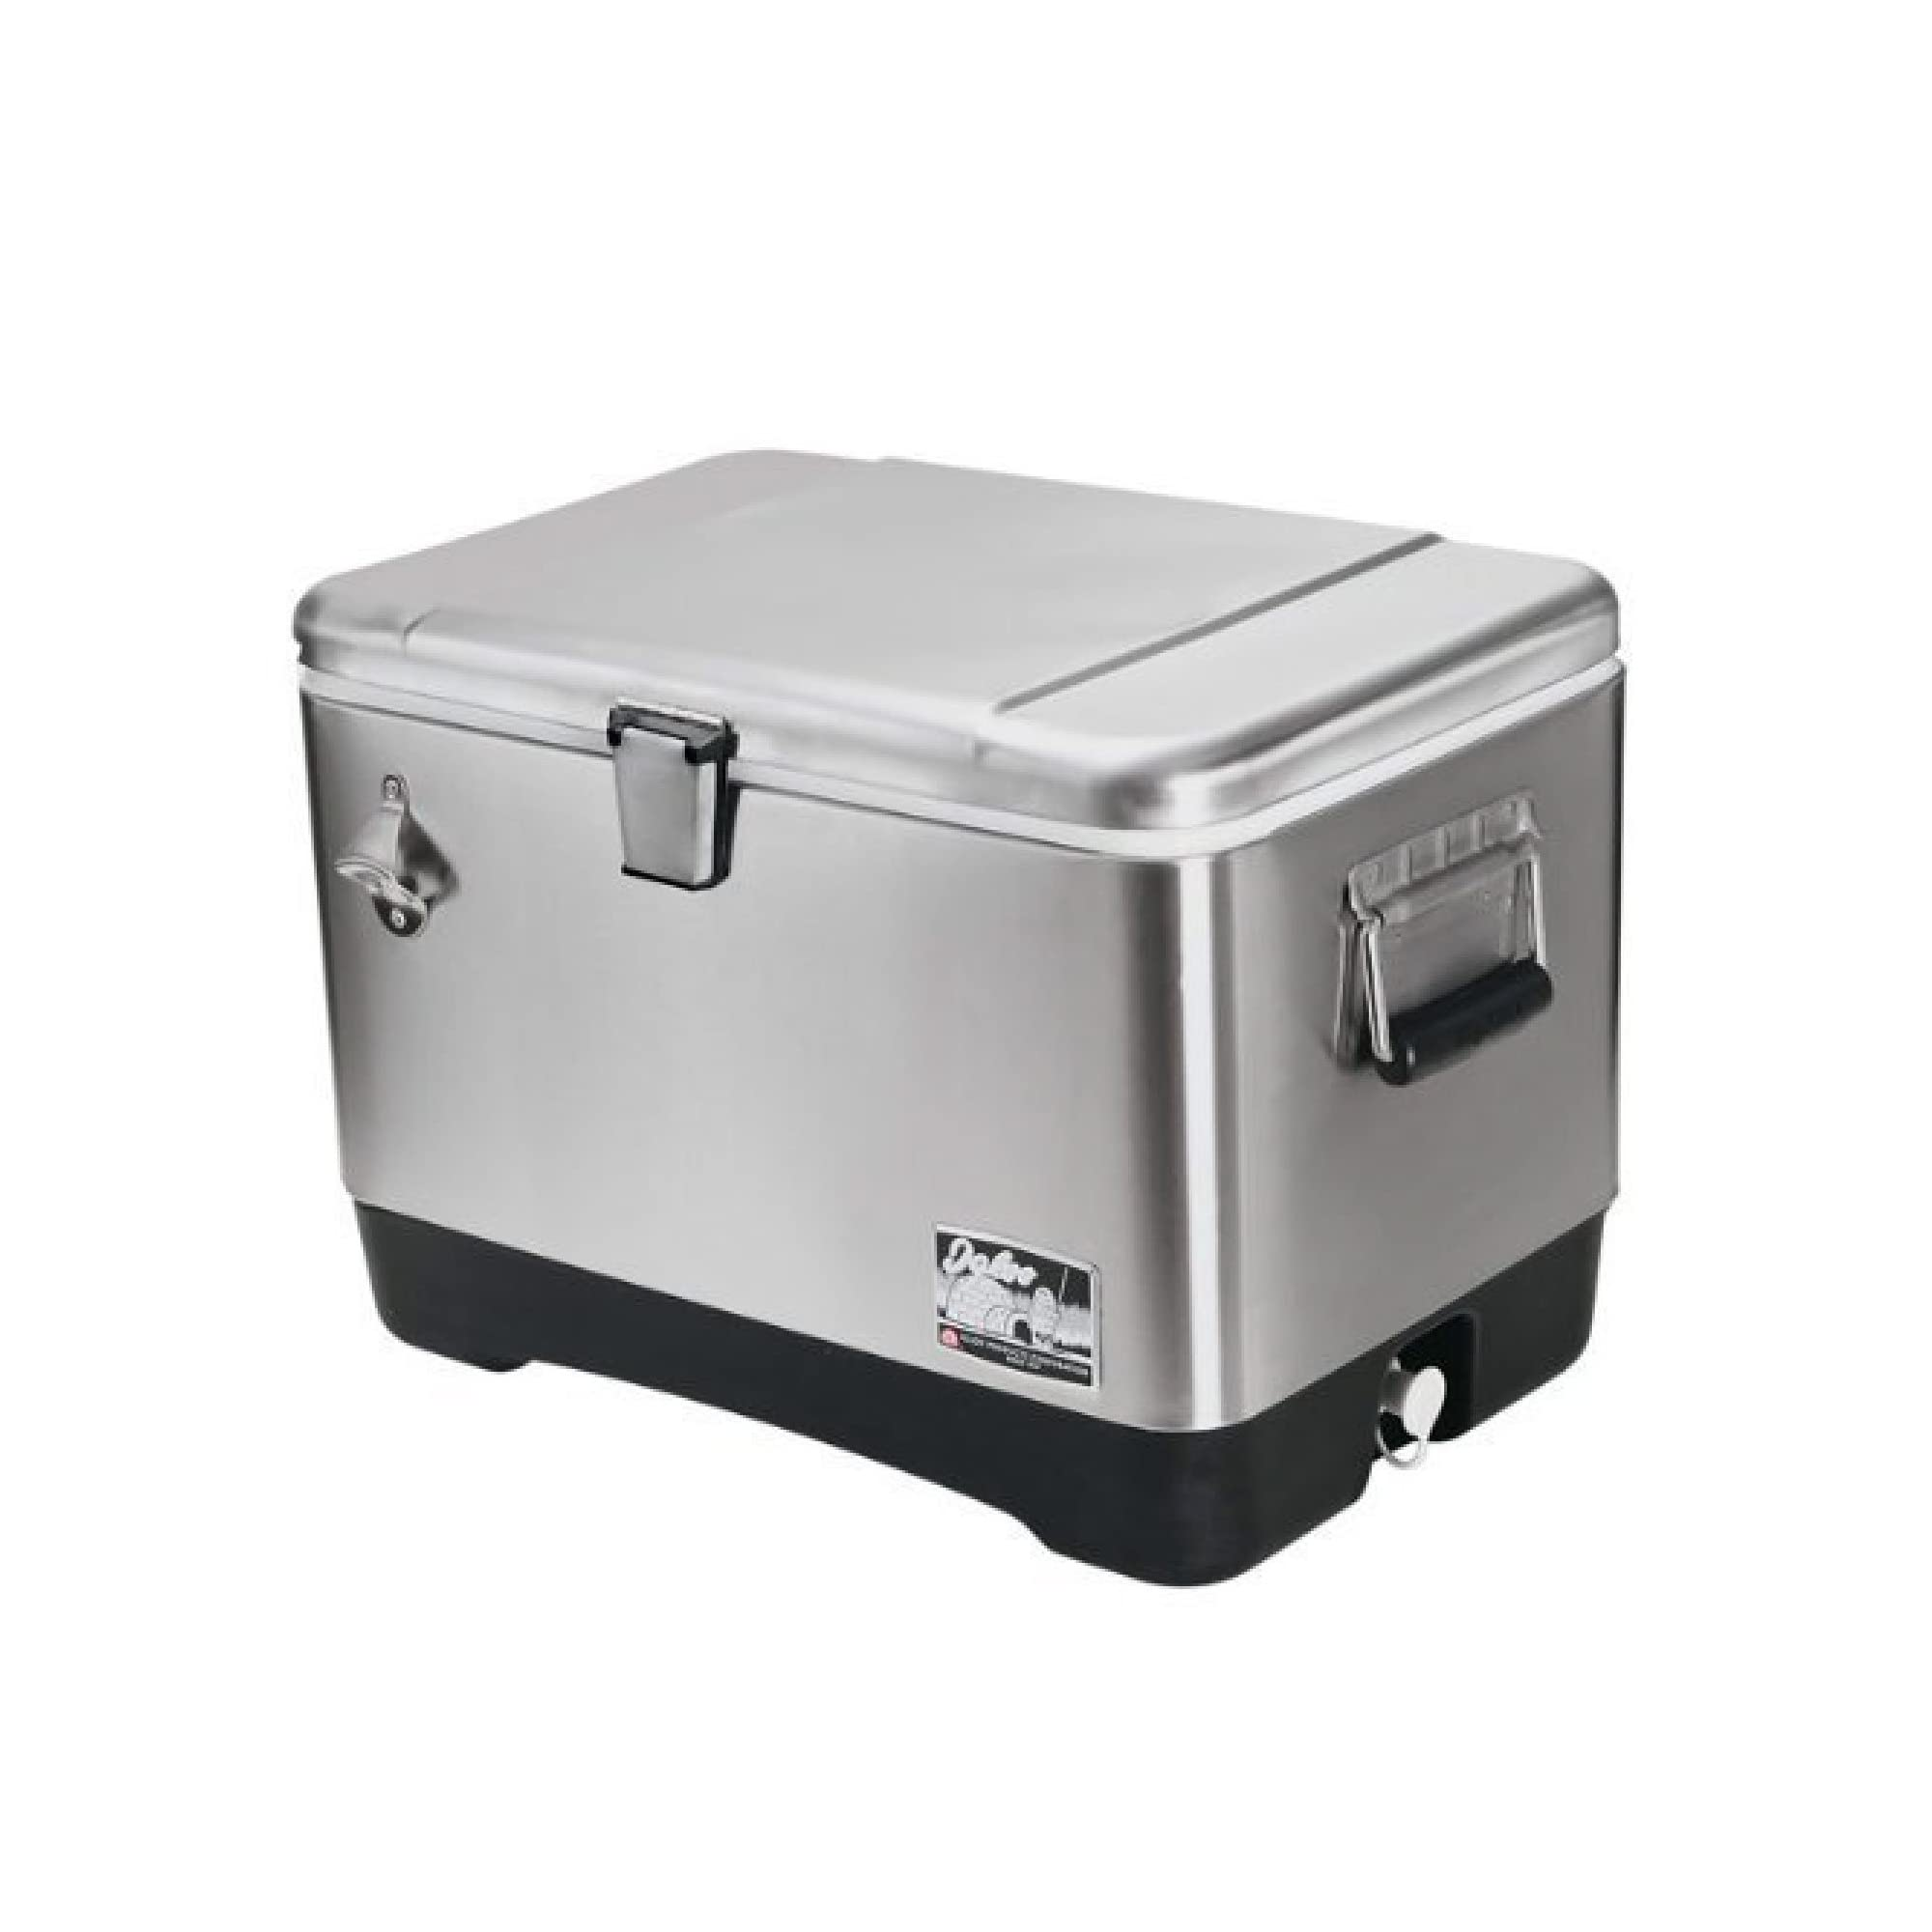 Deals on Igloo Stainless steel cooler (51L) # 44669, 54 quart